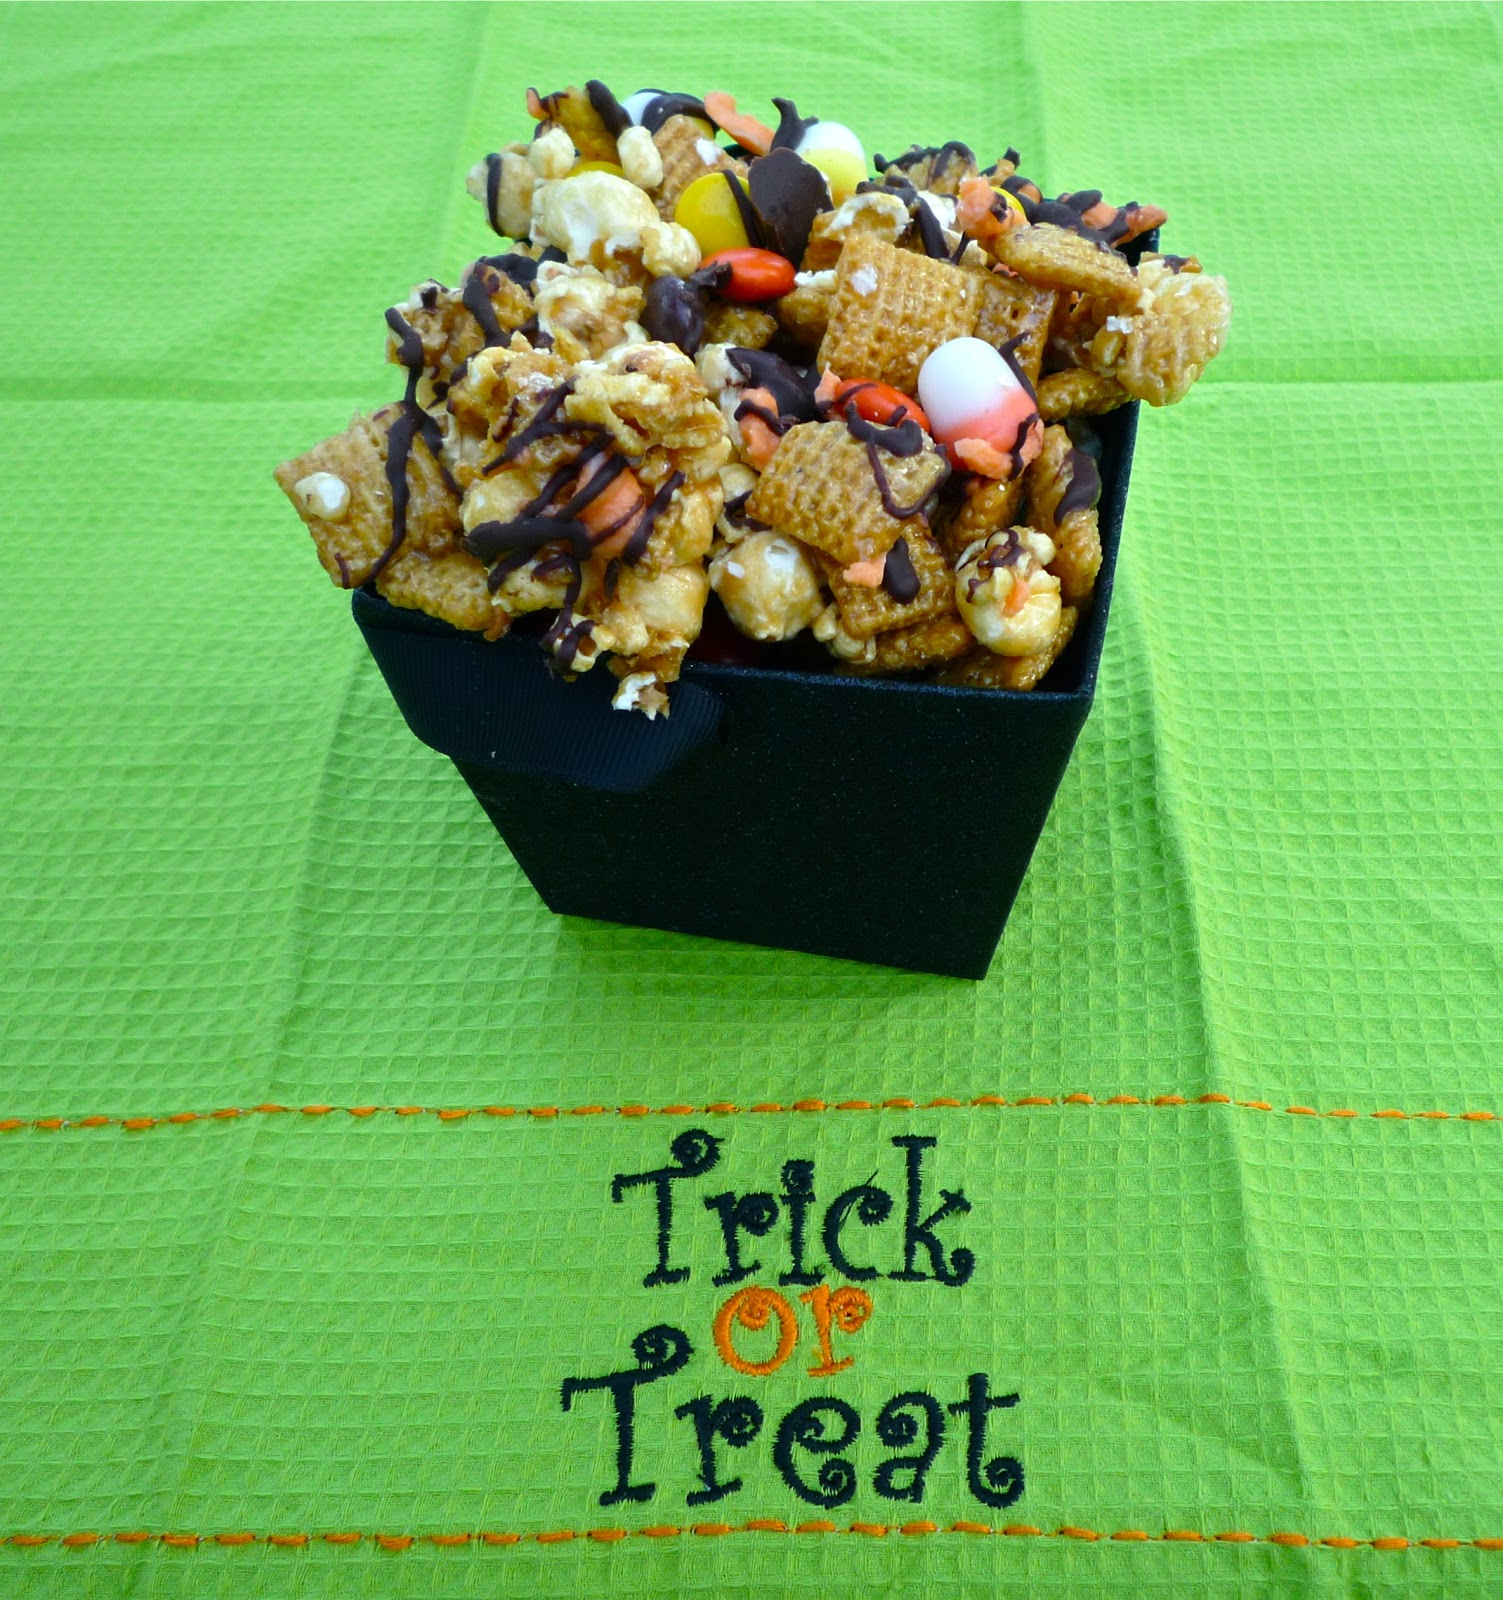 The Weekend Gourmet: #SundaySupper Trick-or-Treat Halloween Party ...